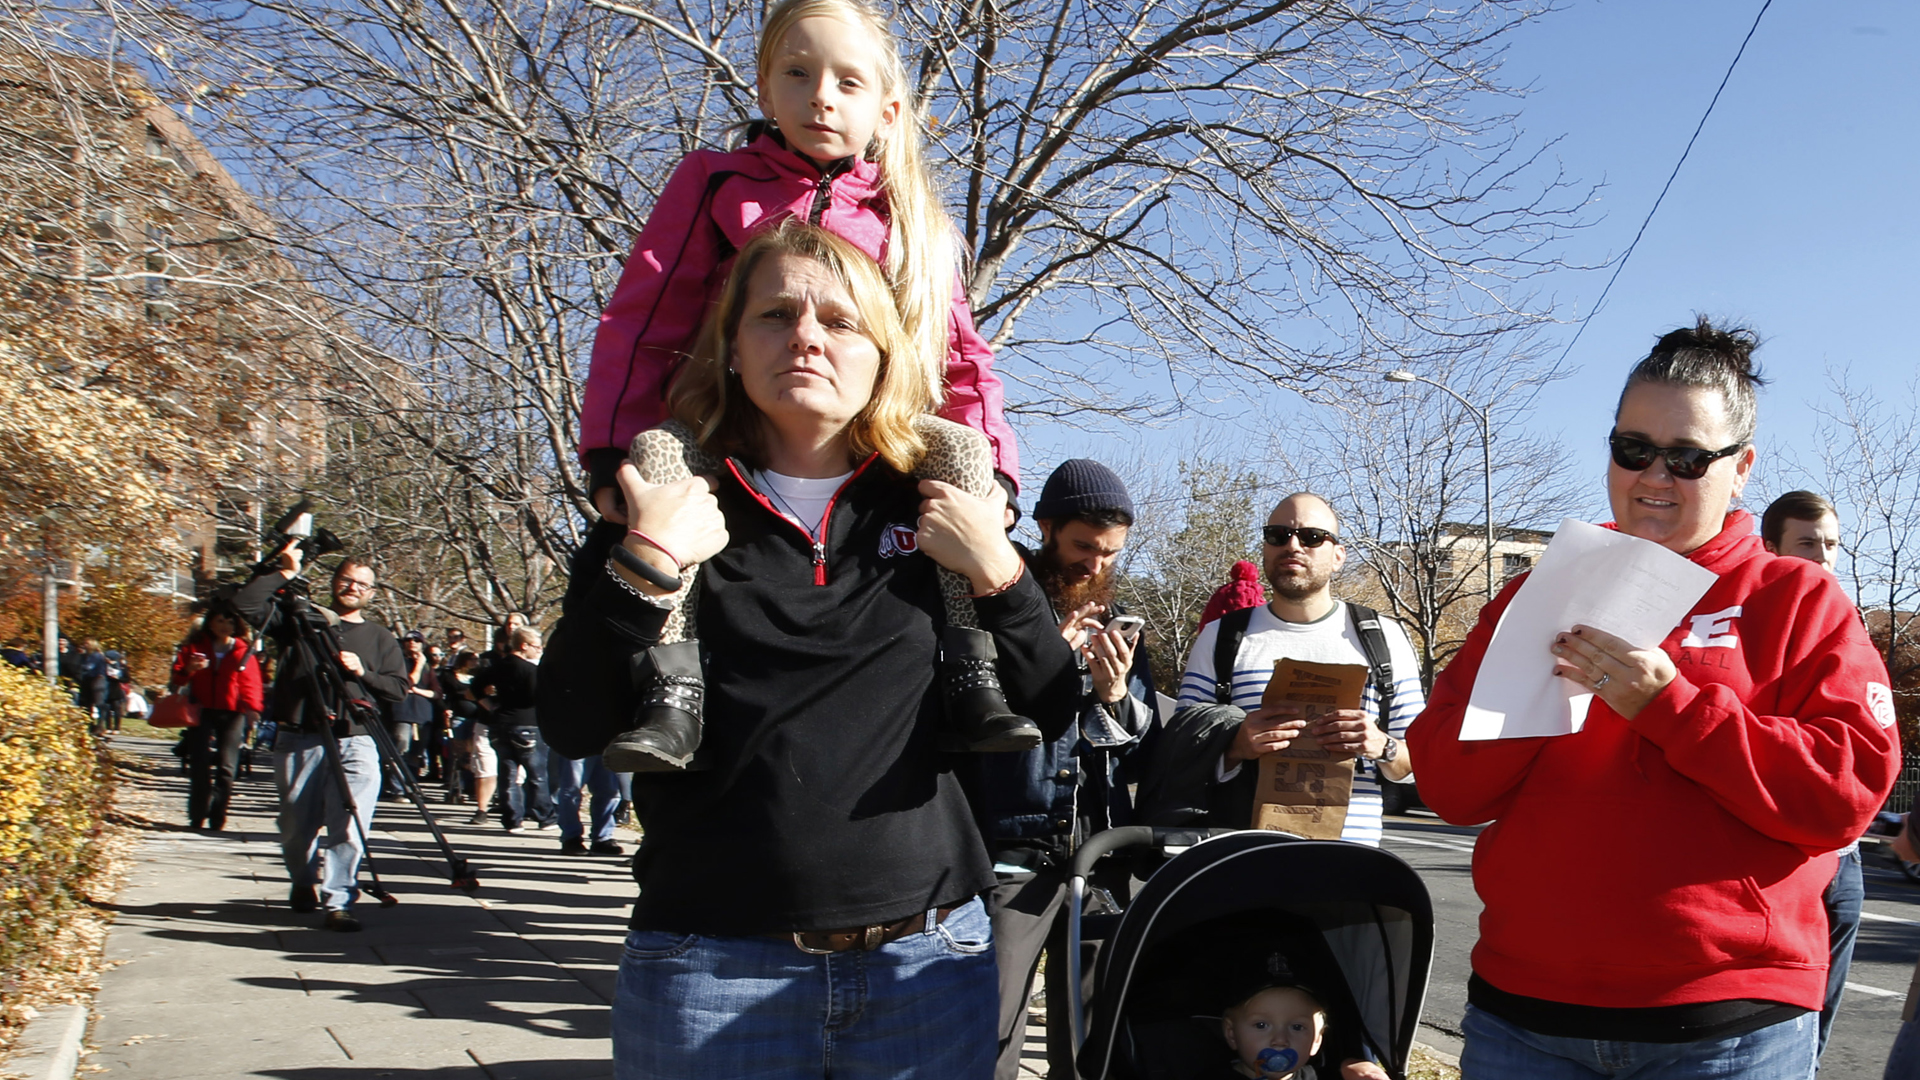 While her wife Debbie (left) and kids Chole and Cason stand in line, Trisha Allen-Gibby fills out papers for her and her family to resign from the Church of Jesus Christ of Latter-Day Saints in response to a recent change in church policy towards married LGBT same-sex couples and their children on Nov. 14, 2015, in Salt Lake City, Utah. A little over a week earlier, the Mormon church made a change in their official handbook of instructions requiring a disciplinary council and possible excommunication for same-sex couples and banning the blessing and baptism of their children into the church. (Credit: George Frey/Getty Images)